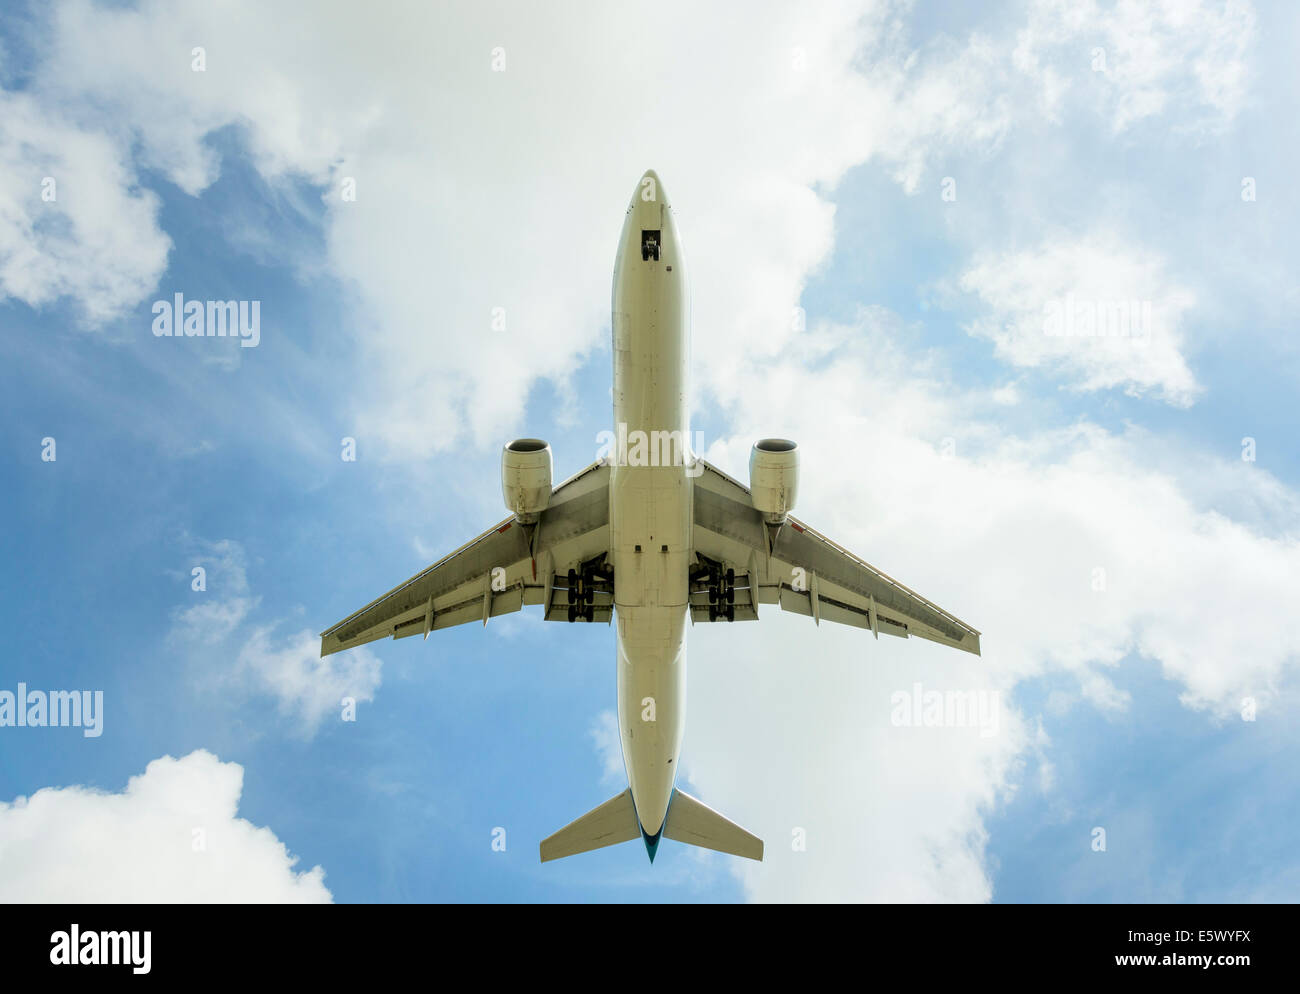 Aeroplane approaching Amsterdam Airport Schiphol, viewed from below - Stock Image